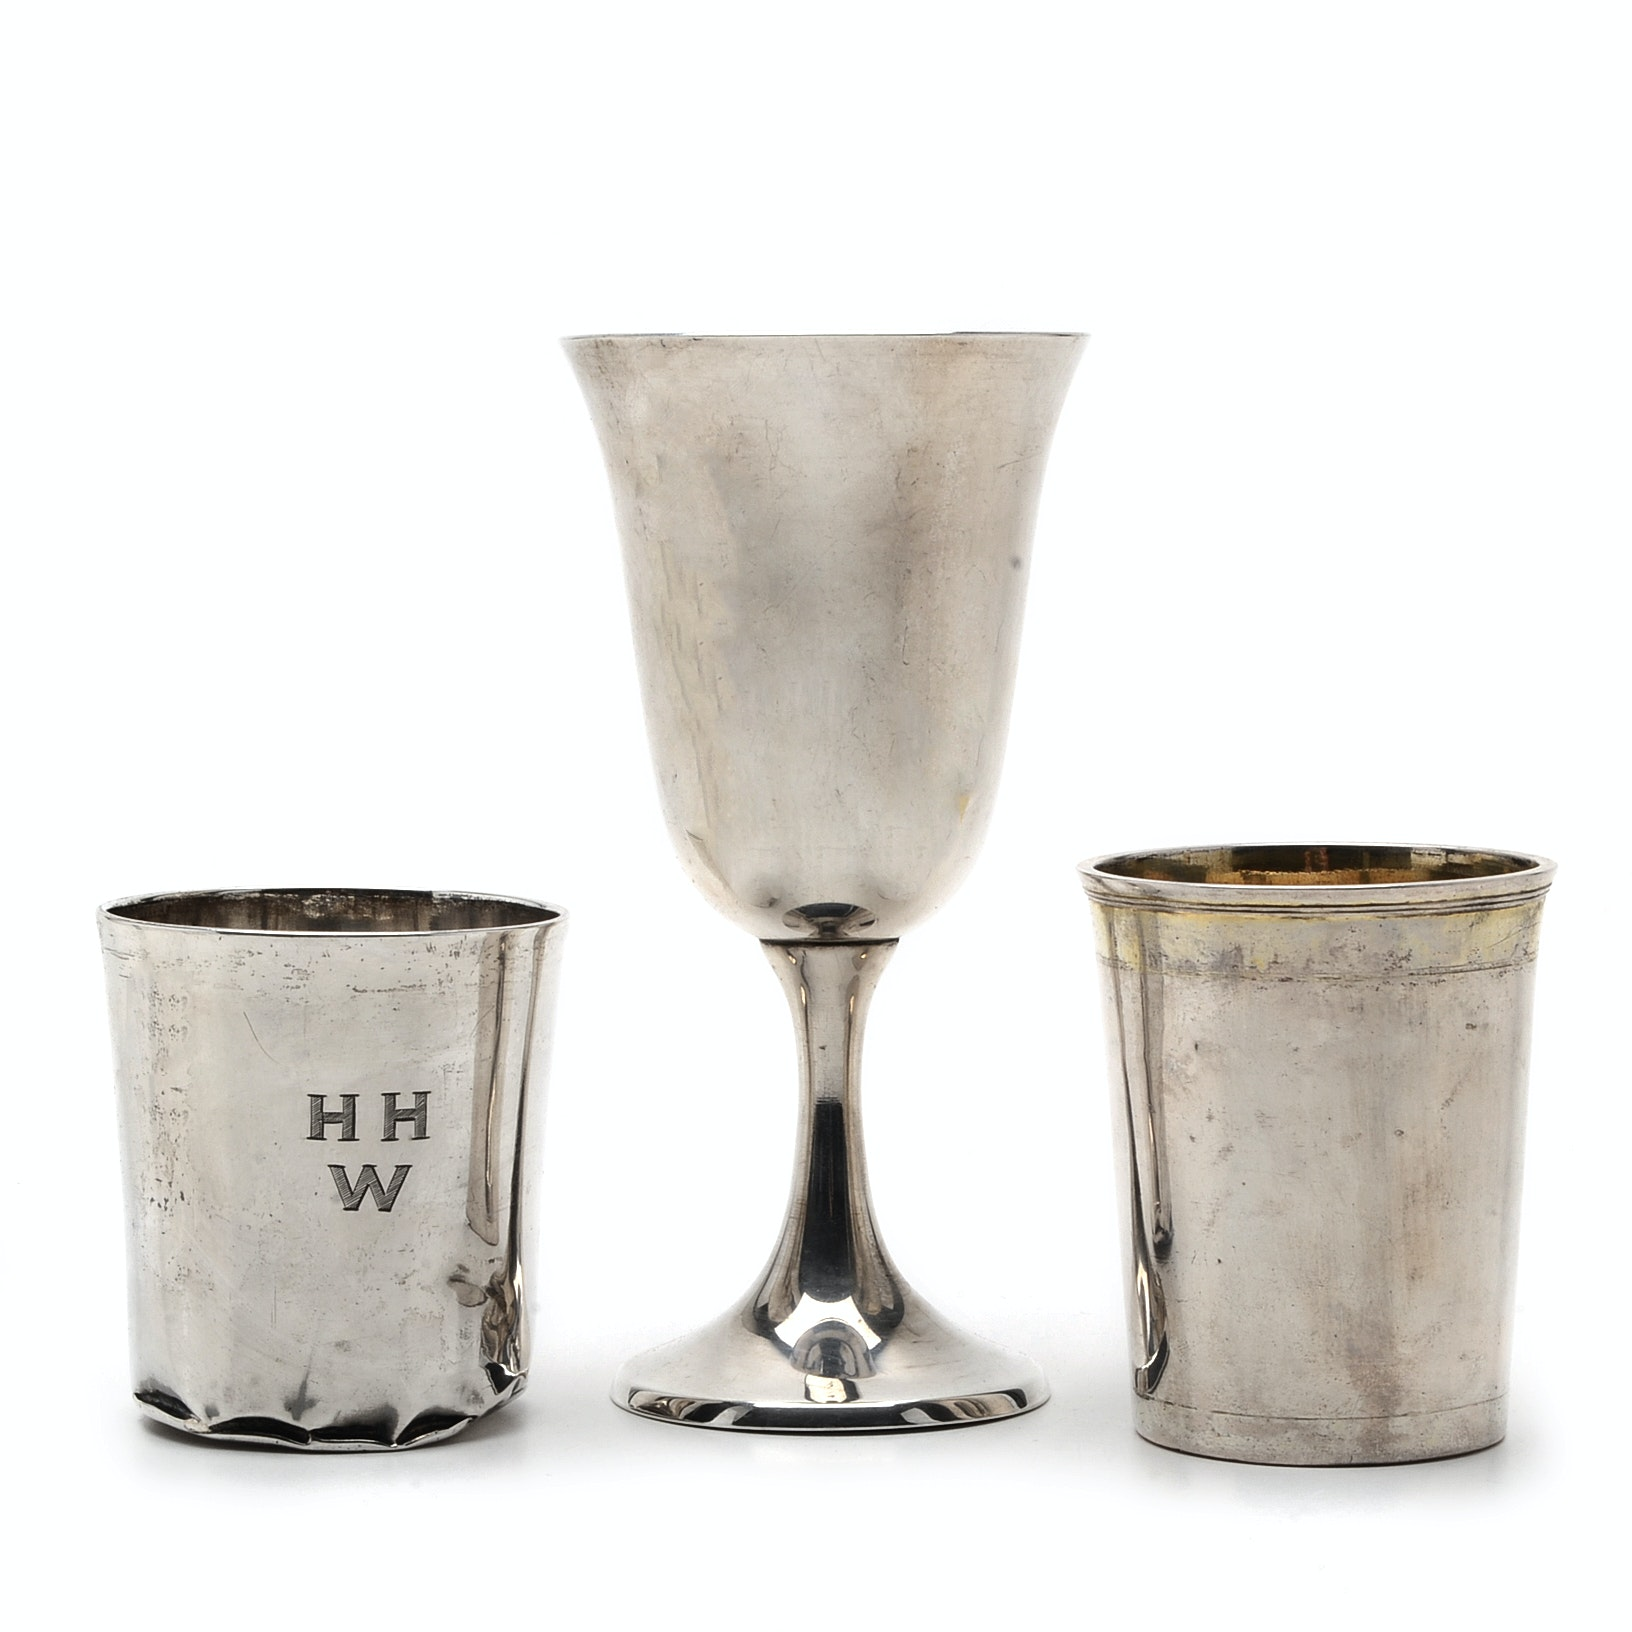 Assortment of Sterling Silver and 800 Silver Drinking Vessels